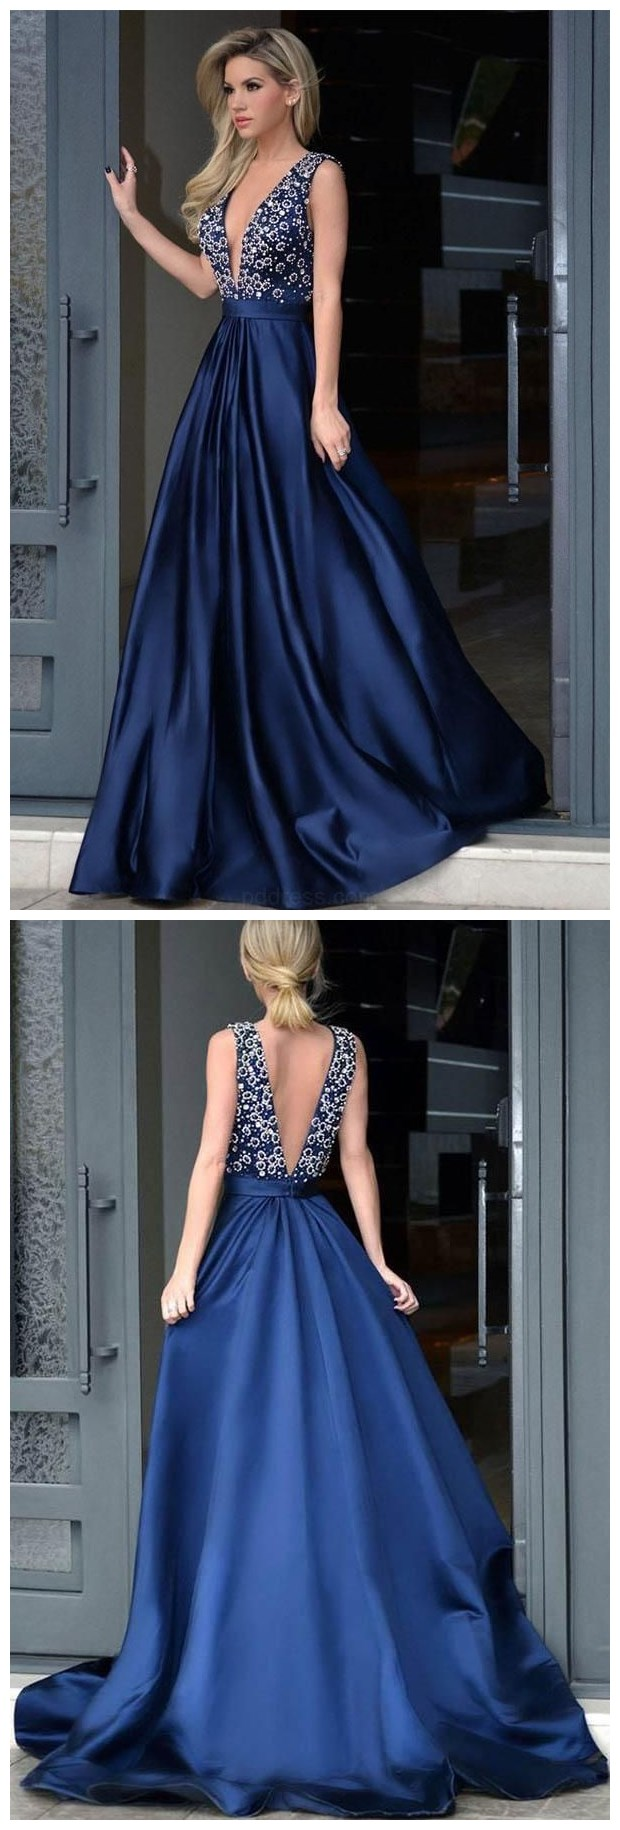 Custom Made Fetching Long Prom Dress V-neck Royal Blue Satin Beading Prom  Dresses With e458454b2